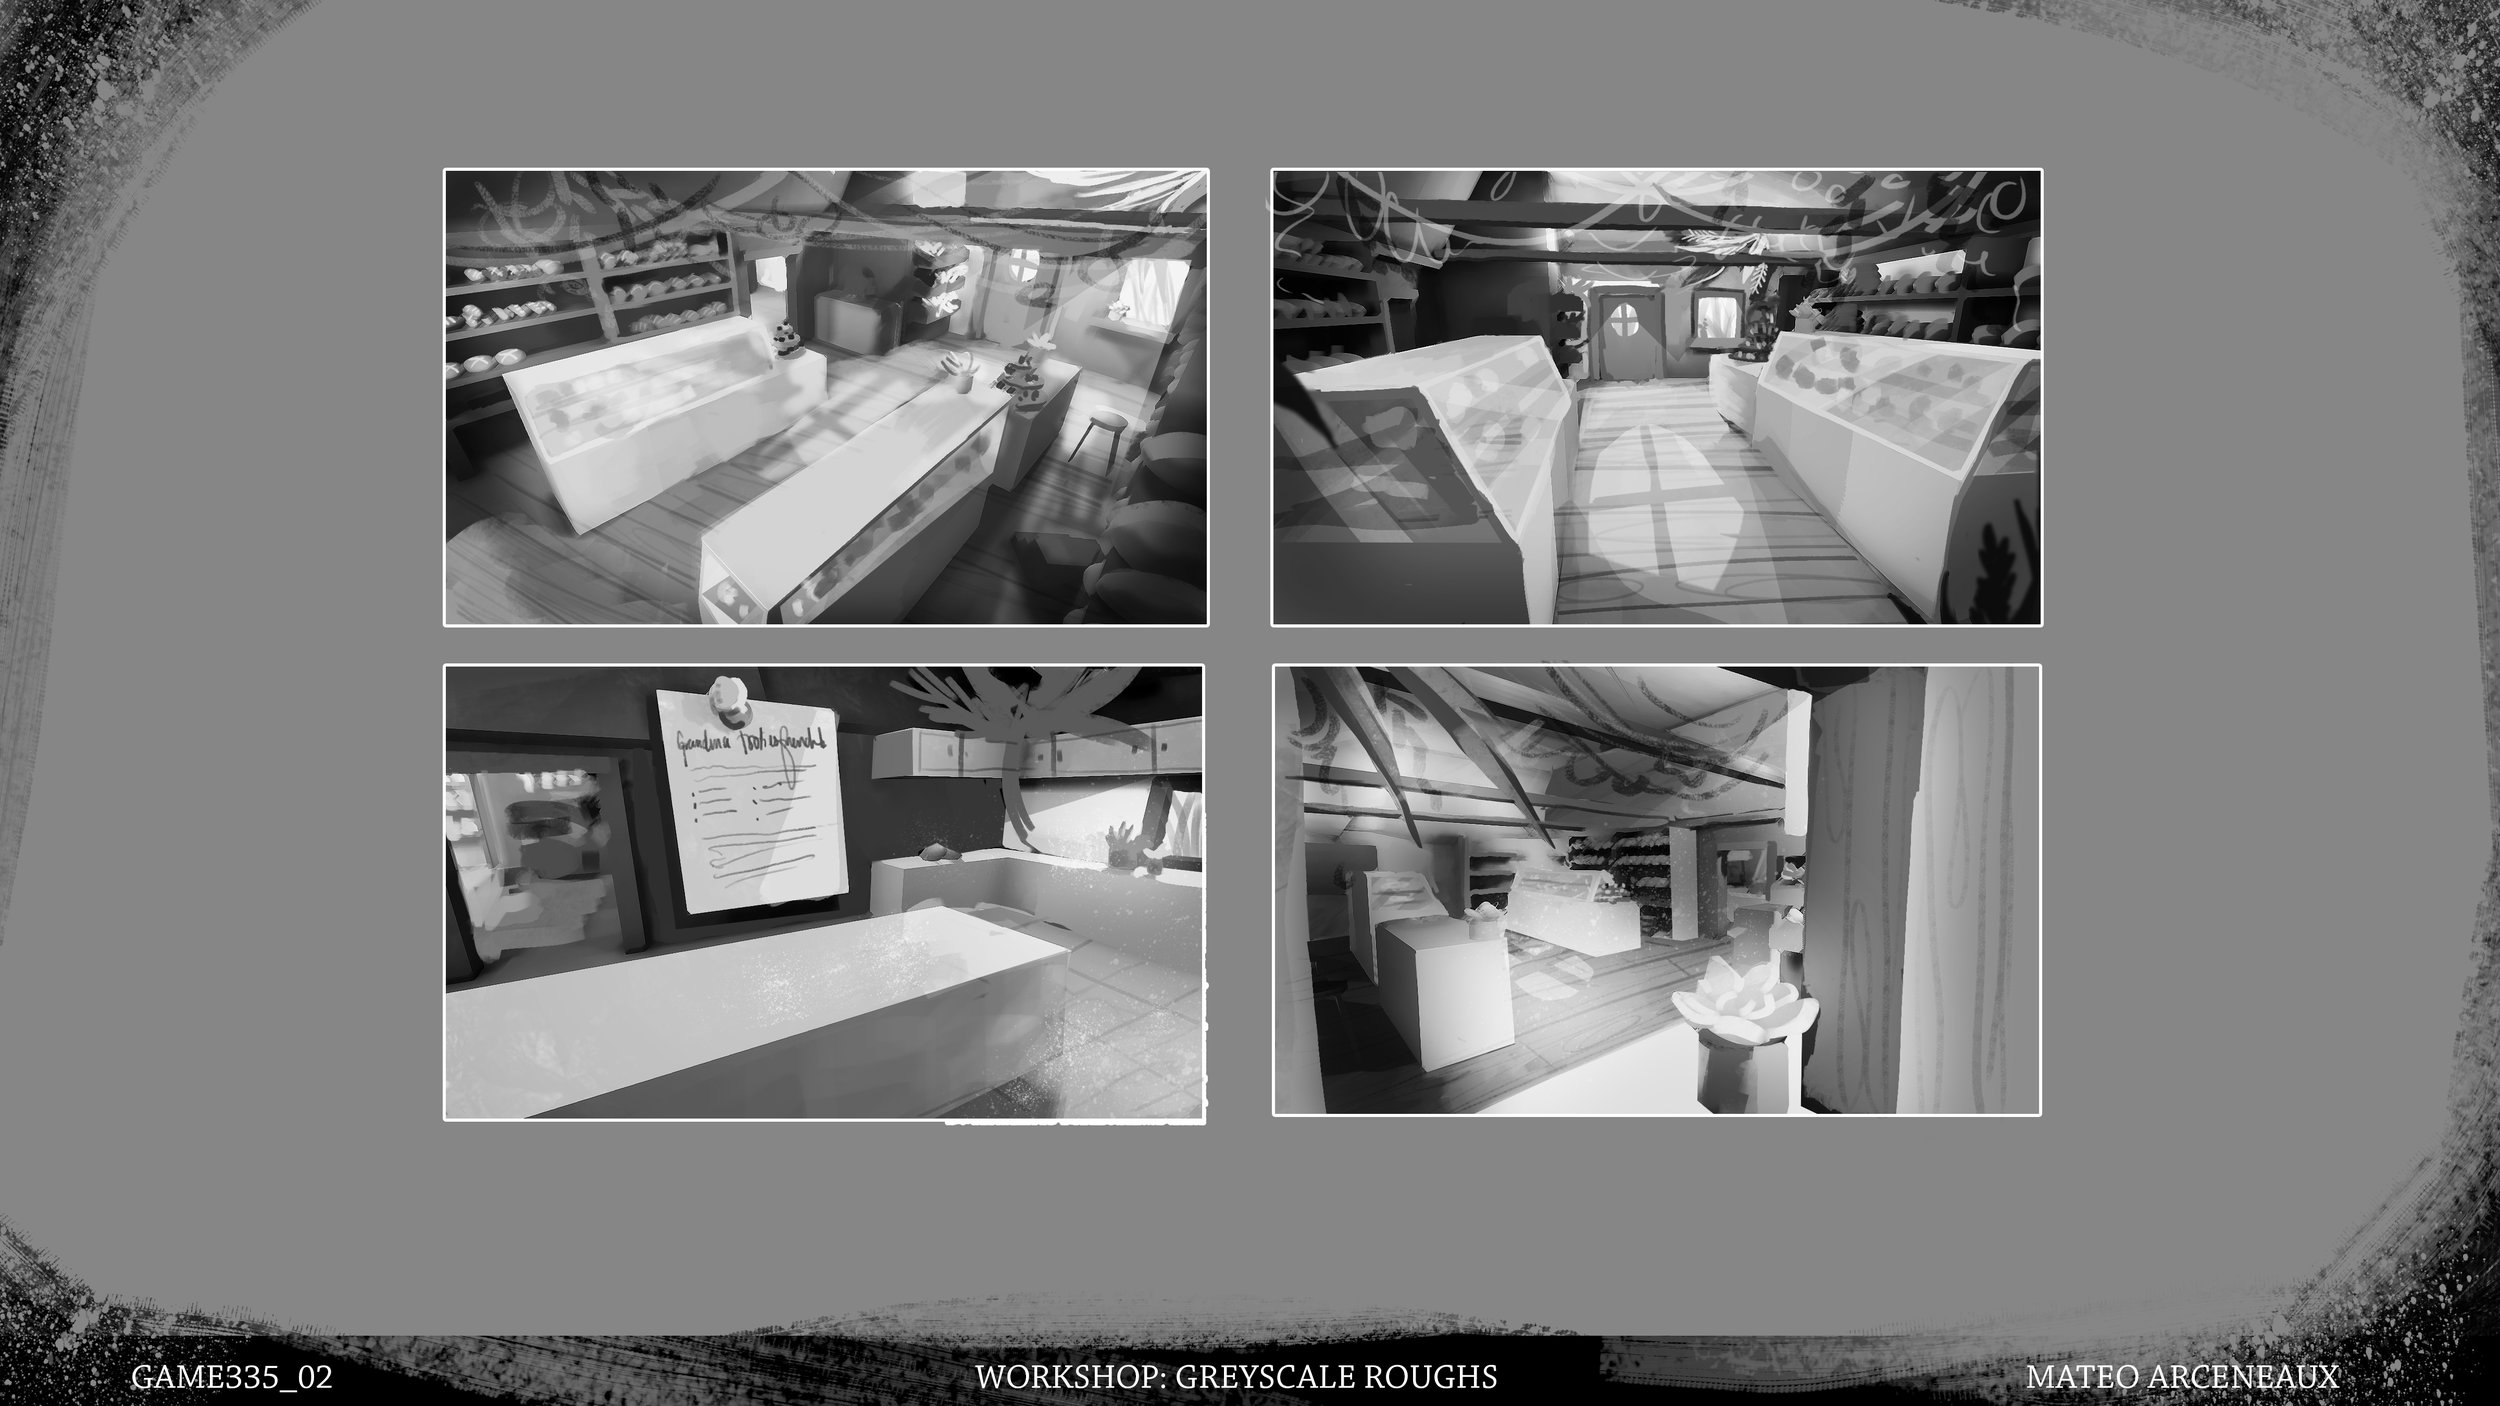 Grayscale roughs for previous environment painting. Programs: Unreal Engine 4, Photoshop